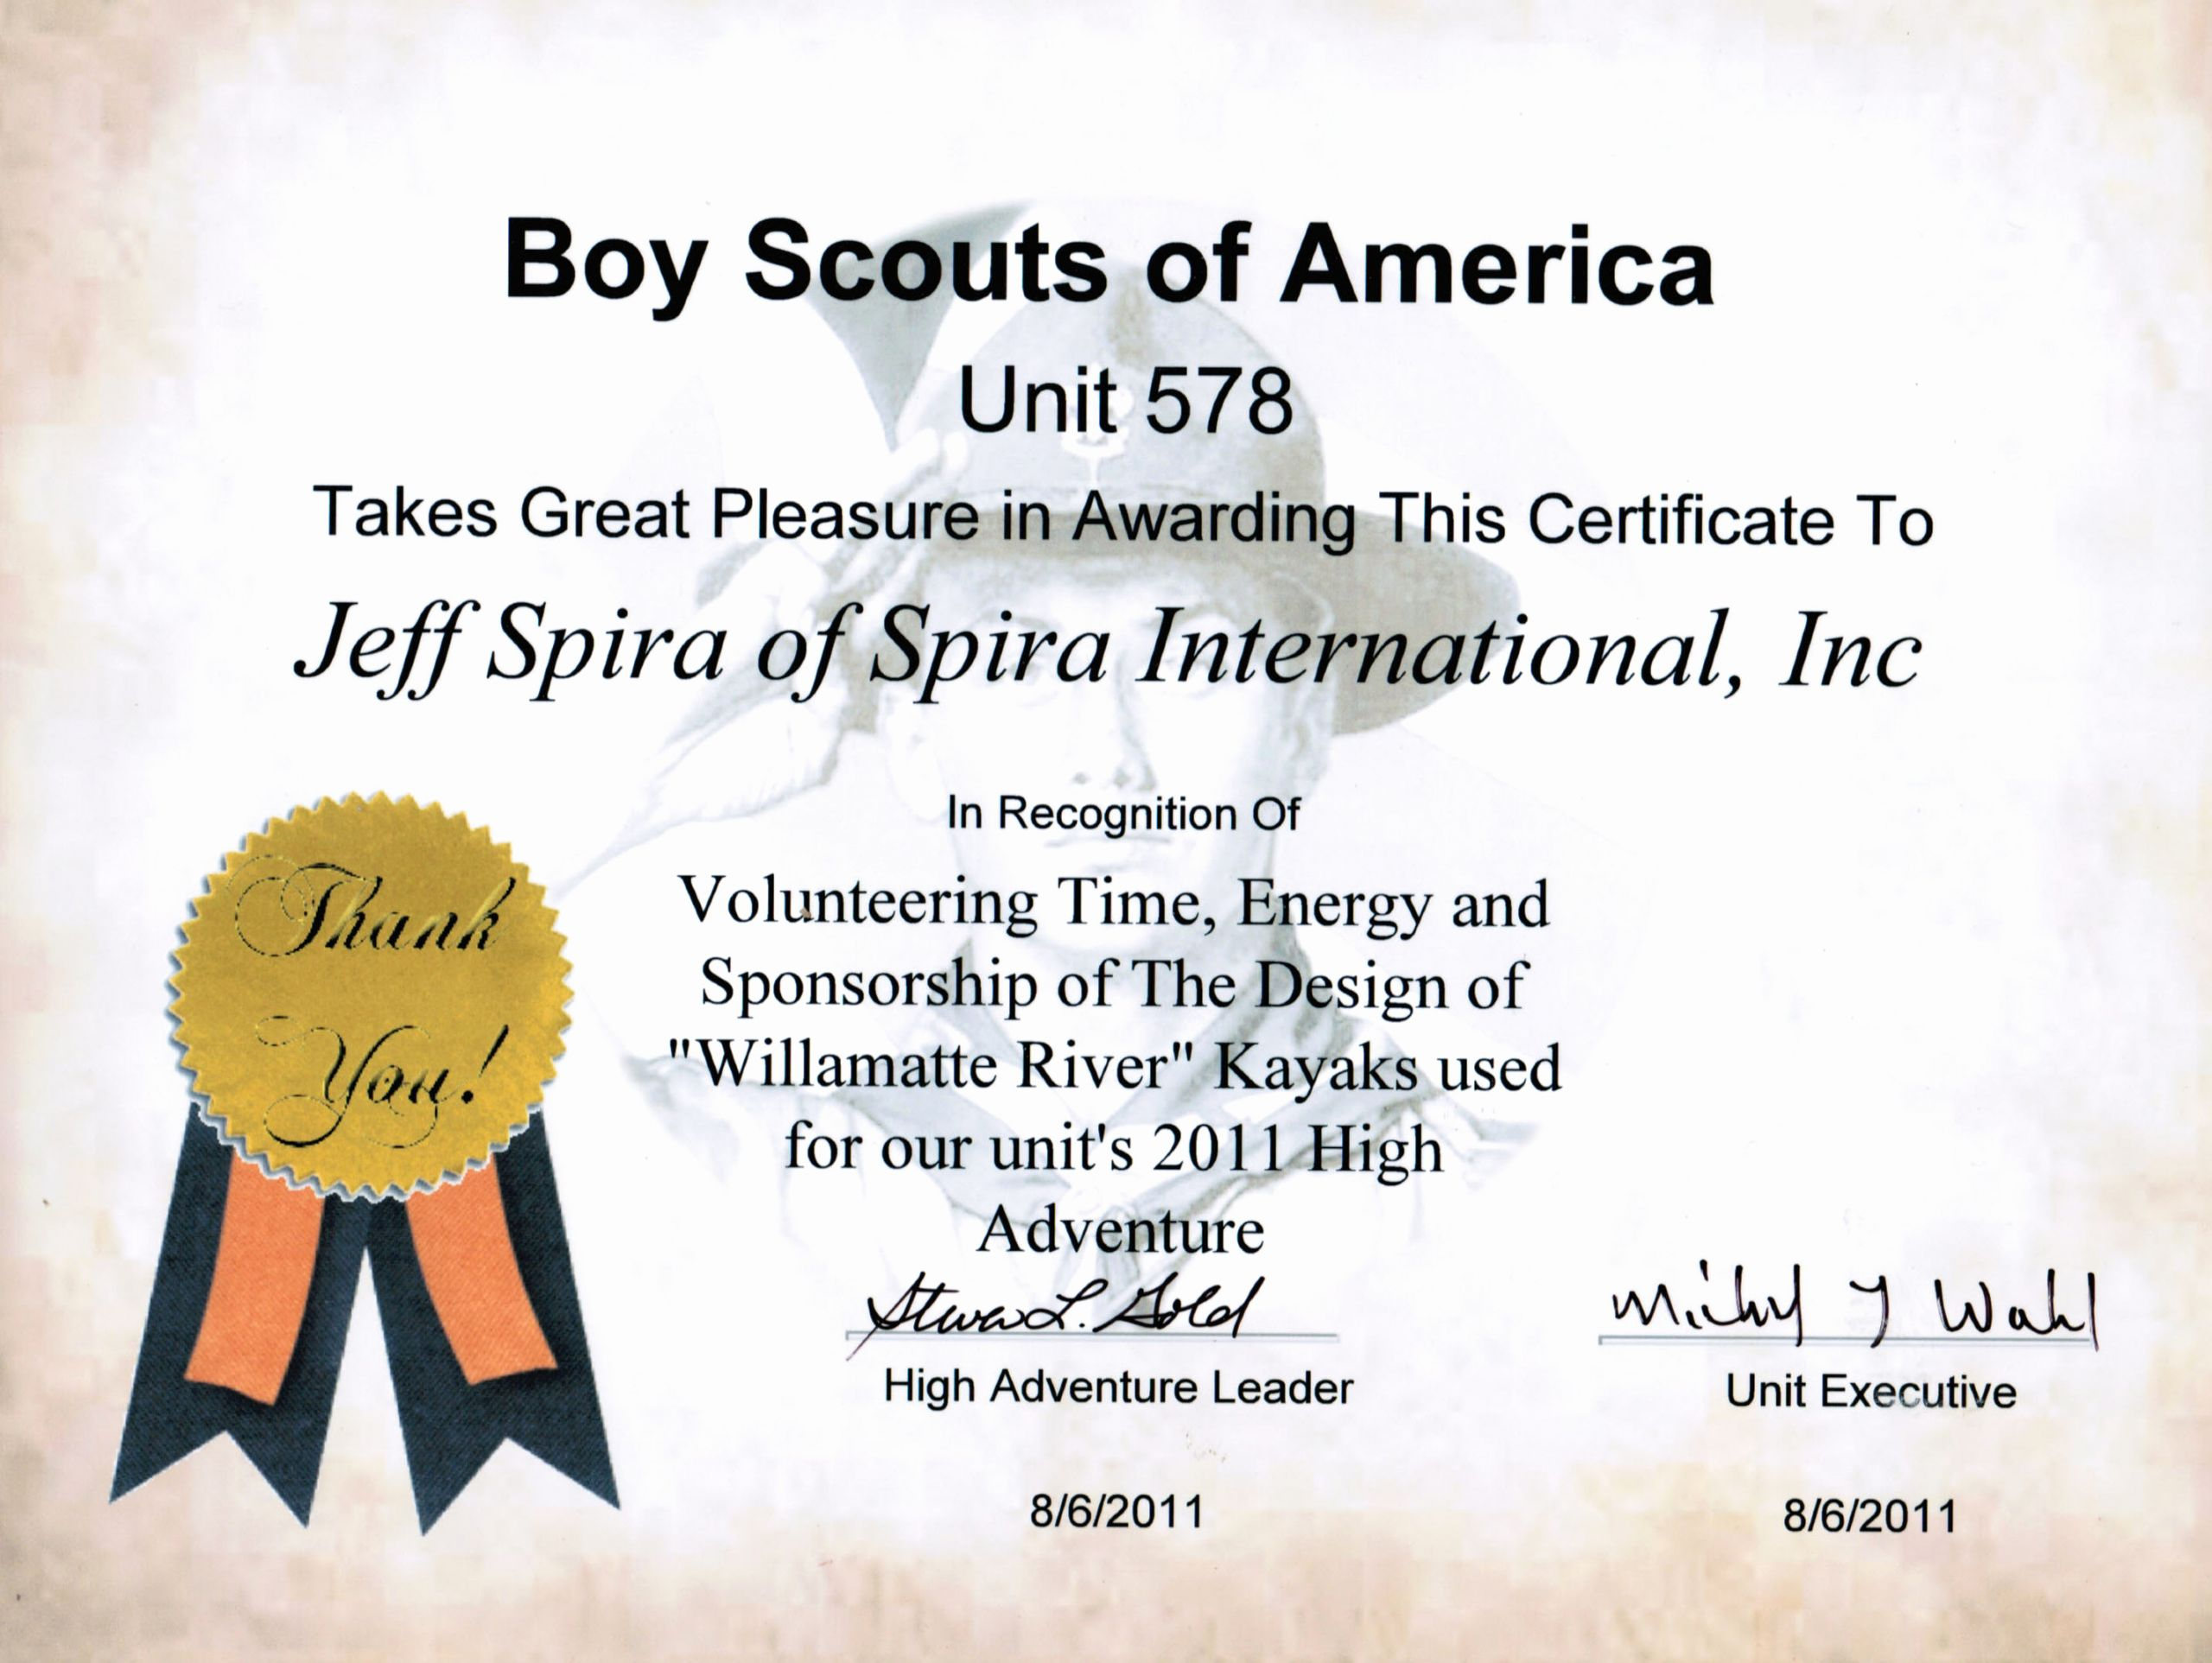 Boy Scout Certificate Of Appreciation Awesome Boatbuilding Tips and Tricks